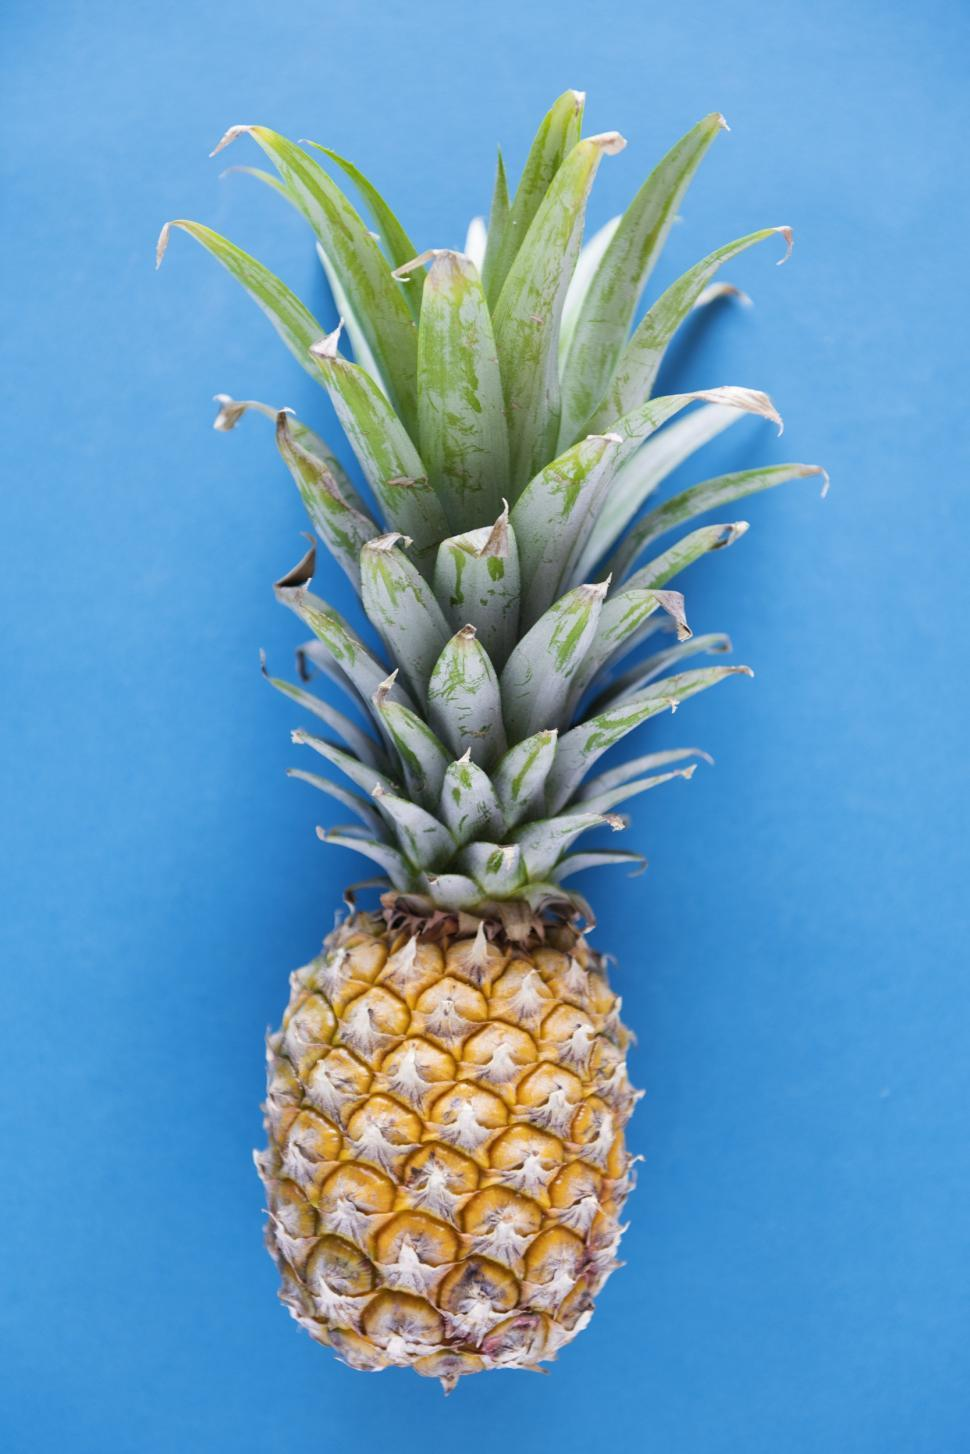 Download Free Stock HD Photo of A pineapple on blue background Online